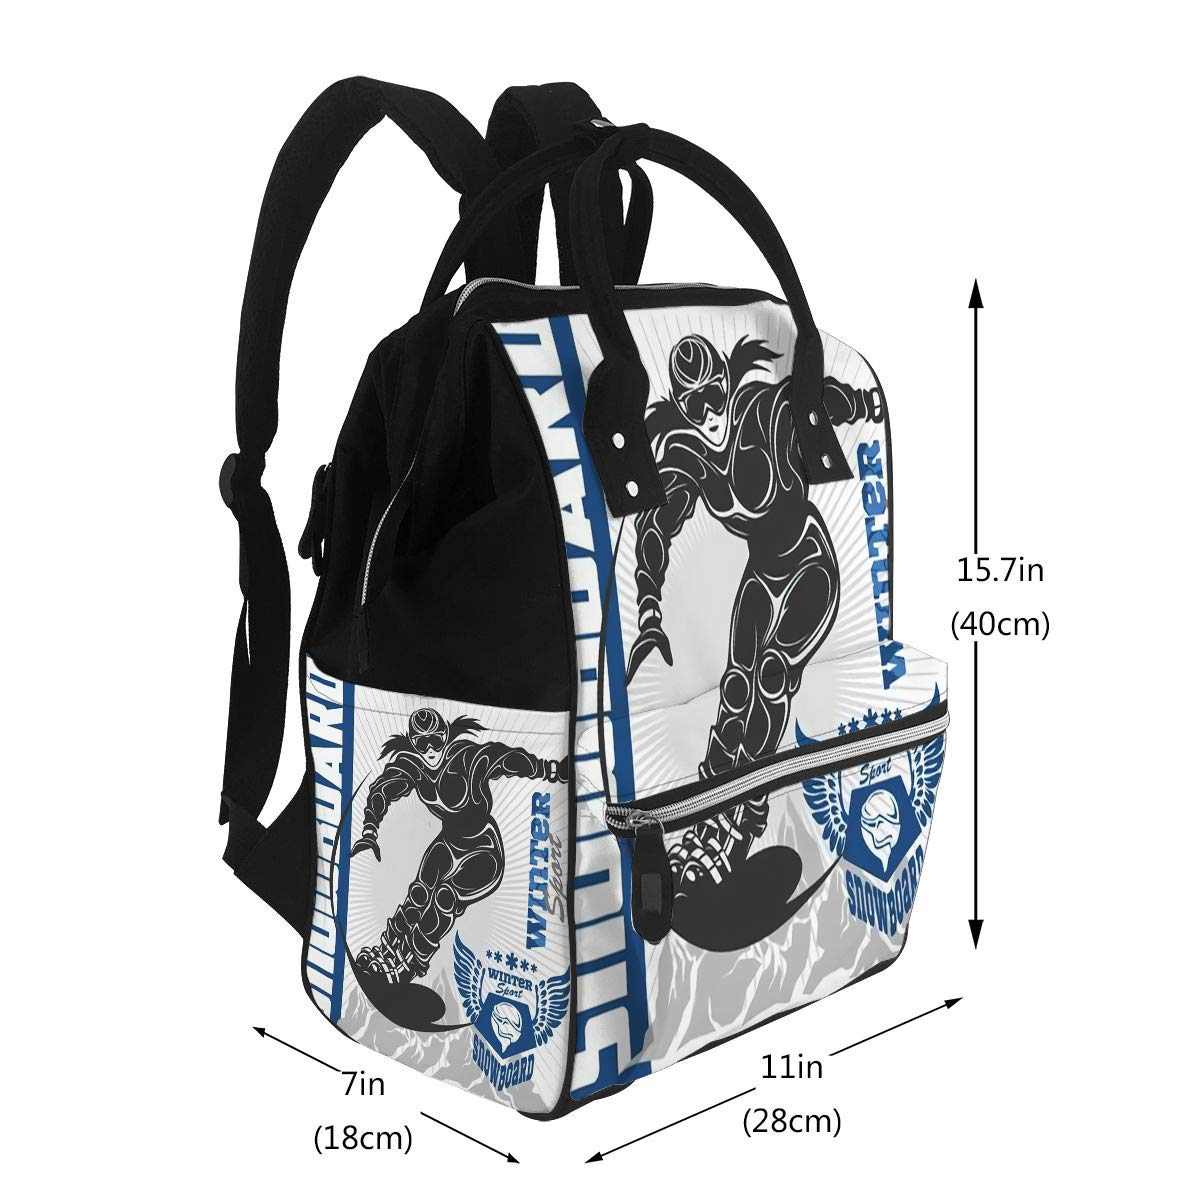 Diaper Bags Mummy Backpack Multi Functions Large Capacity Snowboarding Emblem and Designed Elements Extreme Winter Games Outdoors Adventure Nappy Bag Nursing Bag for Baby Care for Traveling